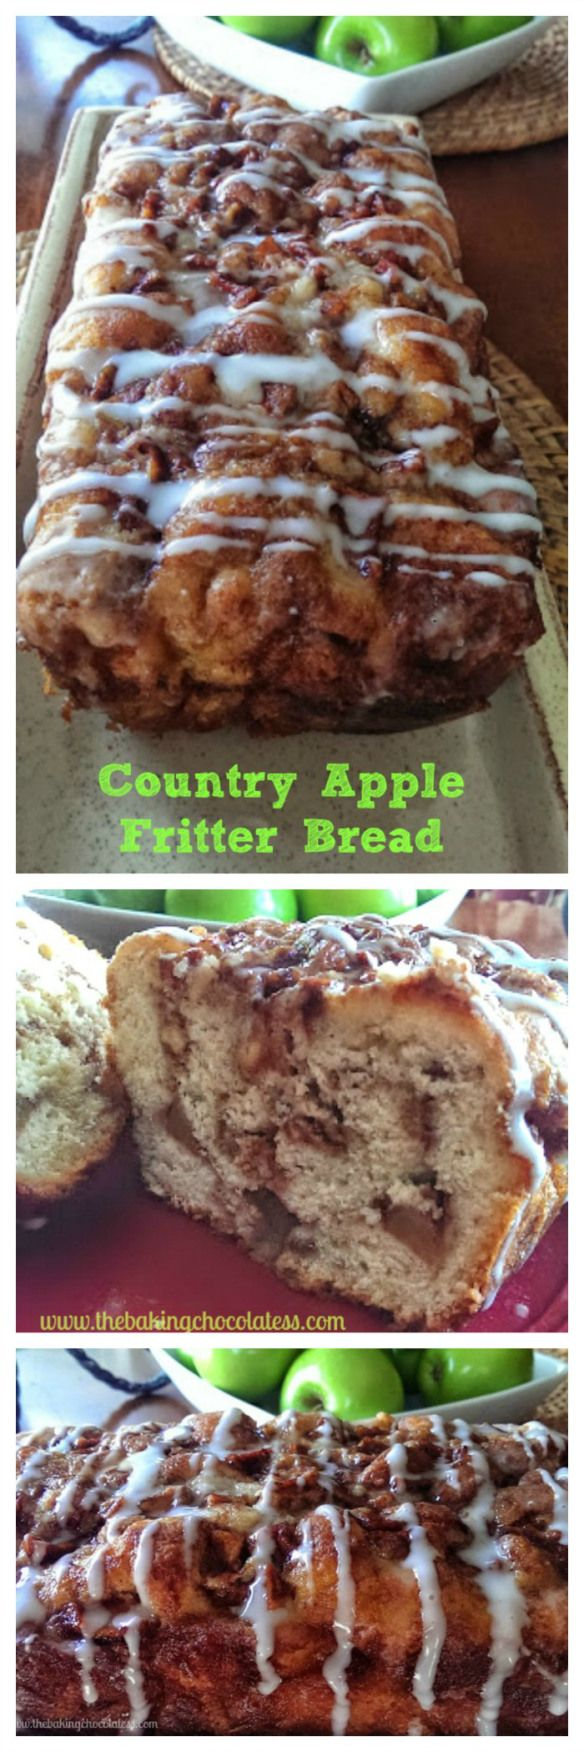 Awesome Country Apple Fritter Bread! I love baking things like this bc I always have these basic ingredients in my house!!!